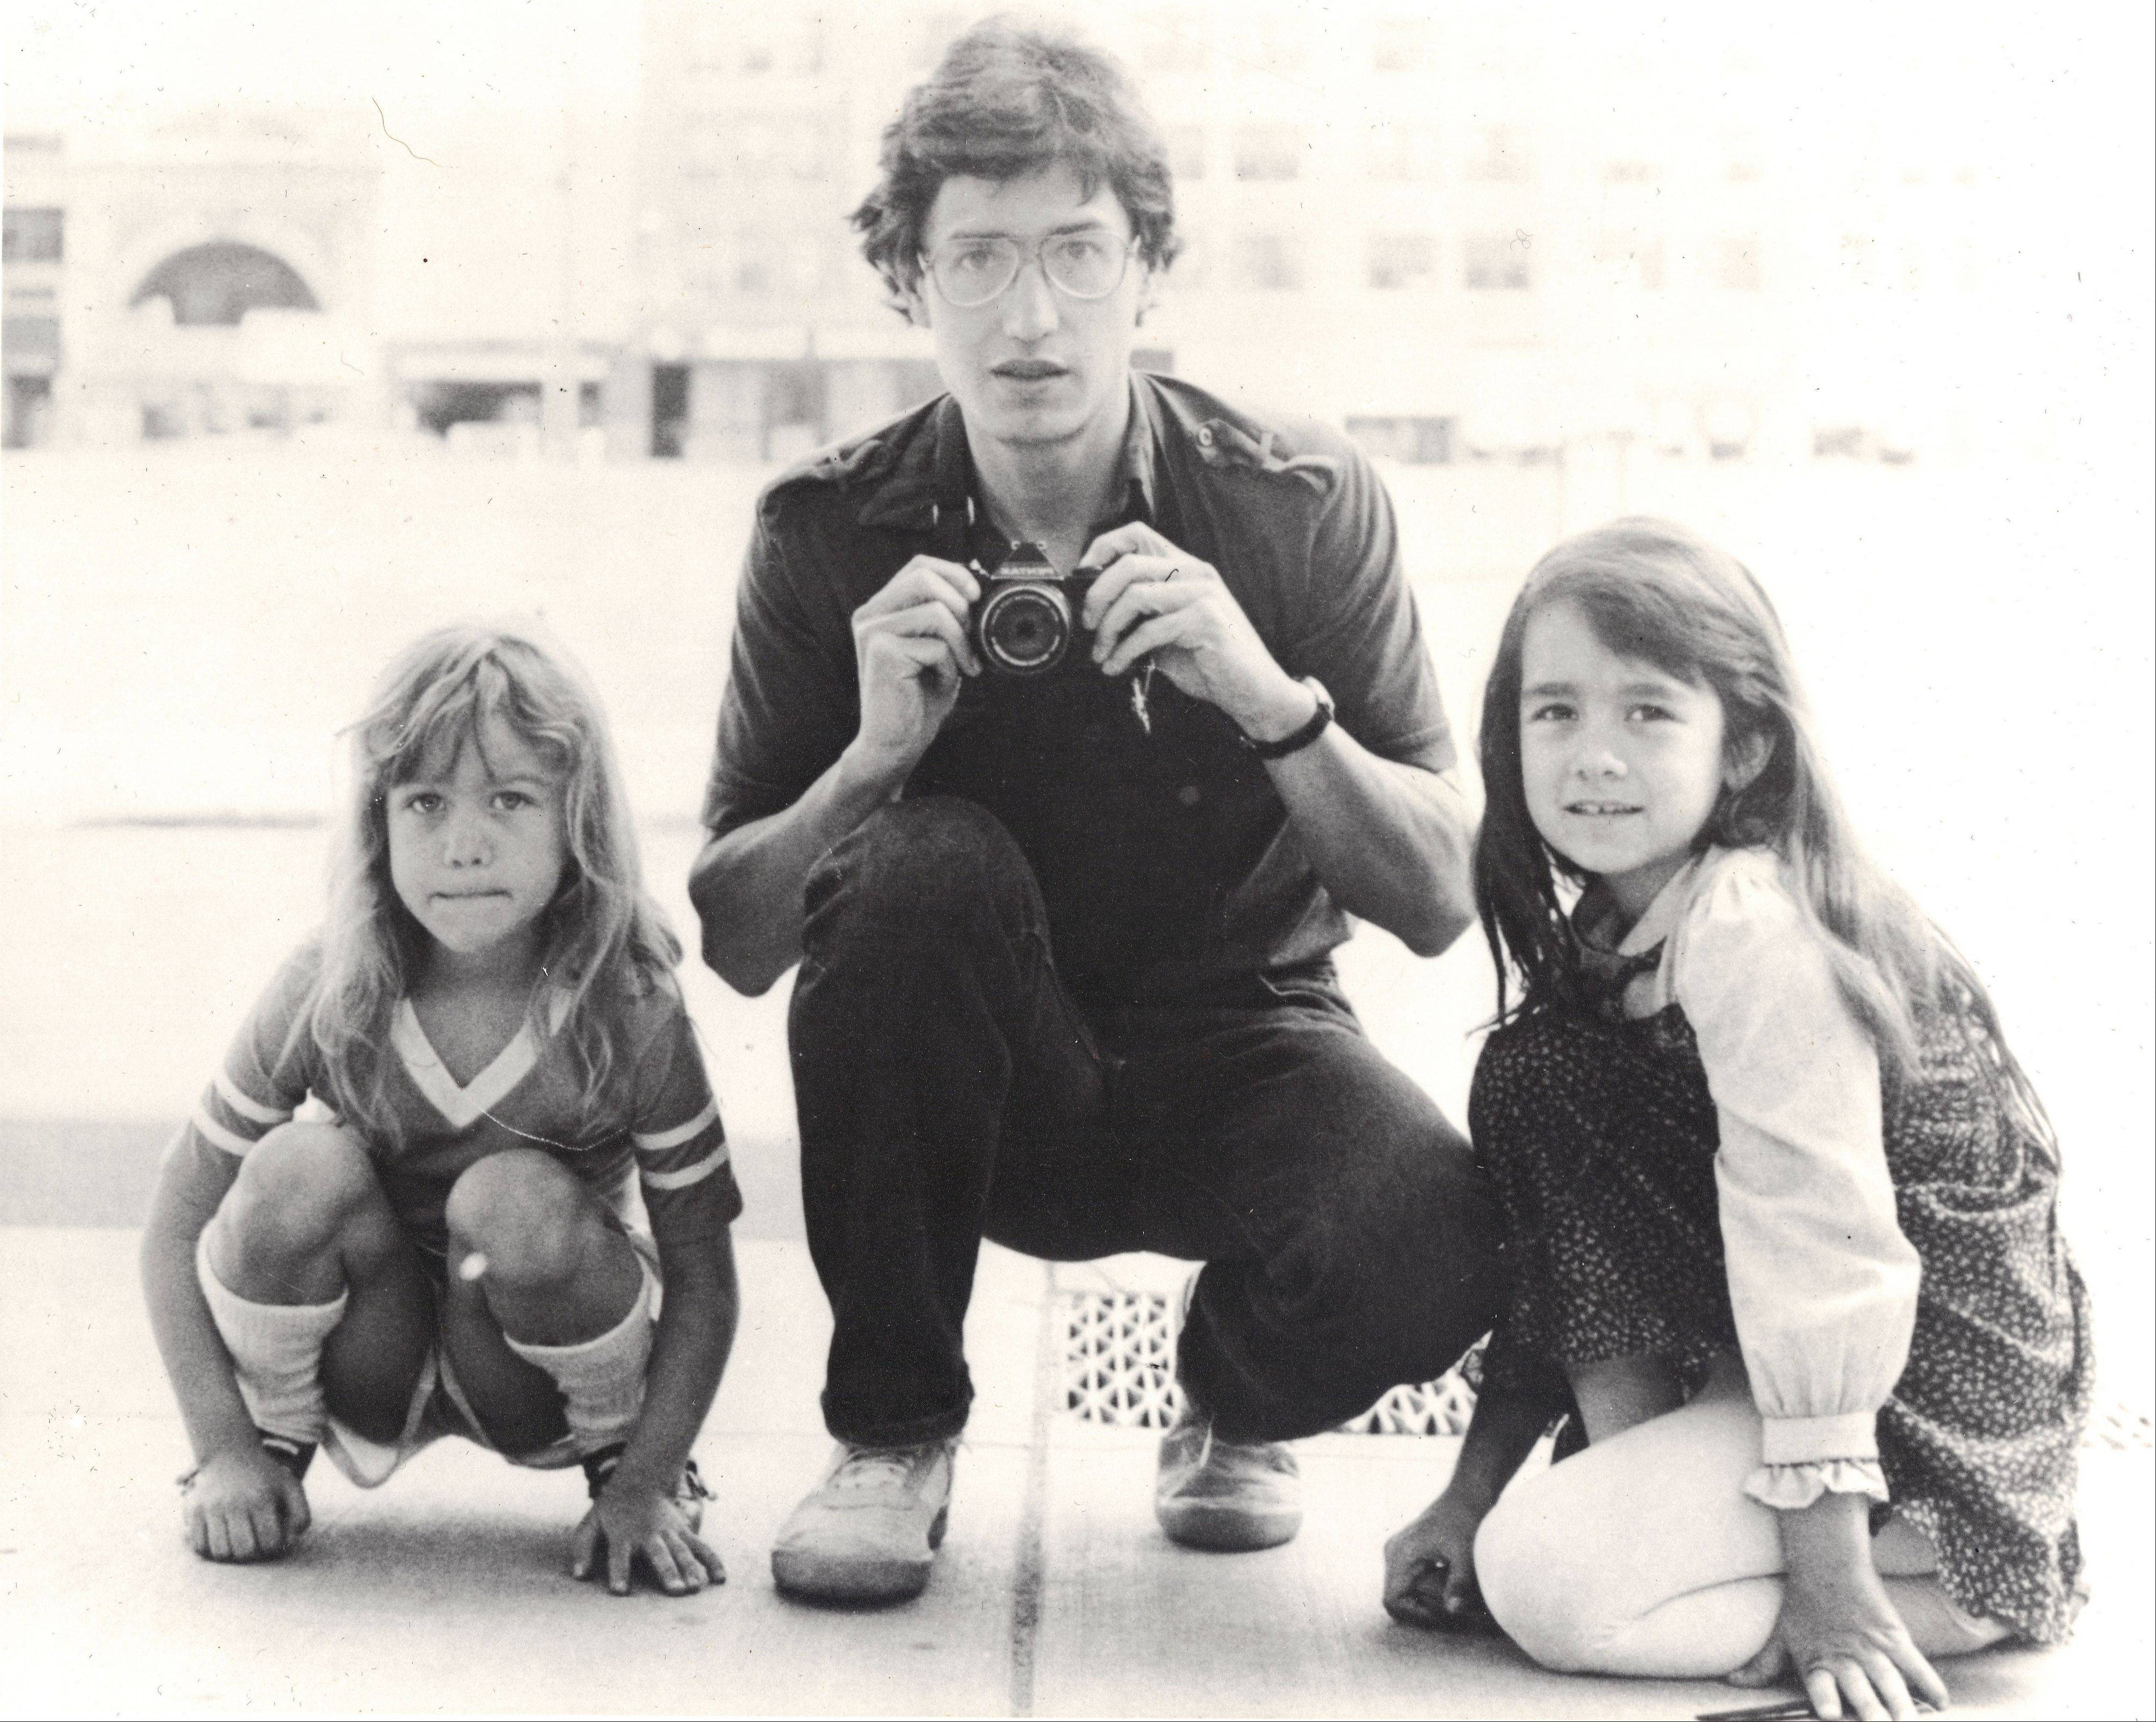 "Associated PressIn this undated photo provided by Keely Walker Muse, her father journalist John Clay Walker poses for a portrait with his daughters Lannie, left, and Keely in Minneapolis. Mexican drug lord Rafael Caro Quintero was sentenced to 40 years in prison for the 1985 murders of Walker, his friend Alberto Radelat, and DEA agent Enrique ""Kiki"" Camarena, among other crimes. According to witnesses interviewed by DEA agents hunting for Camarena's killers, the cartel had mistaken Walker and Radelat for undercover agents. Caro Quintero walked free this month, 12 years early, after a local appeals court overturned his sentence for three of the murders. Walker was a Marine who was twice wounded by land mines in Vietnam and then worked as a newspaper journalist before taking his family to Mexico so he could write his book in a place where his pension could stretch further. He and his wife were befriended by Radelat, a dentist looking at taking classes at the main university in Guadalajara."